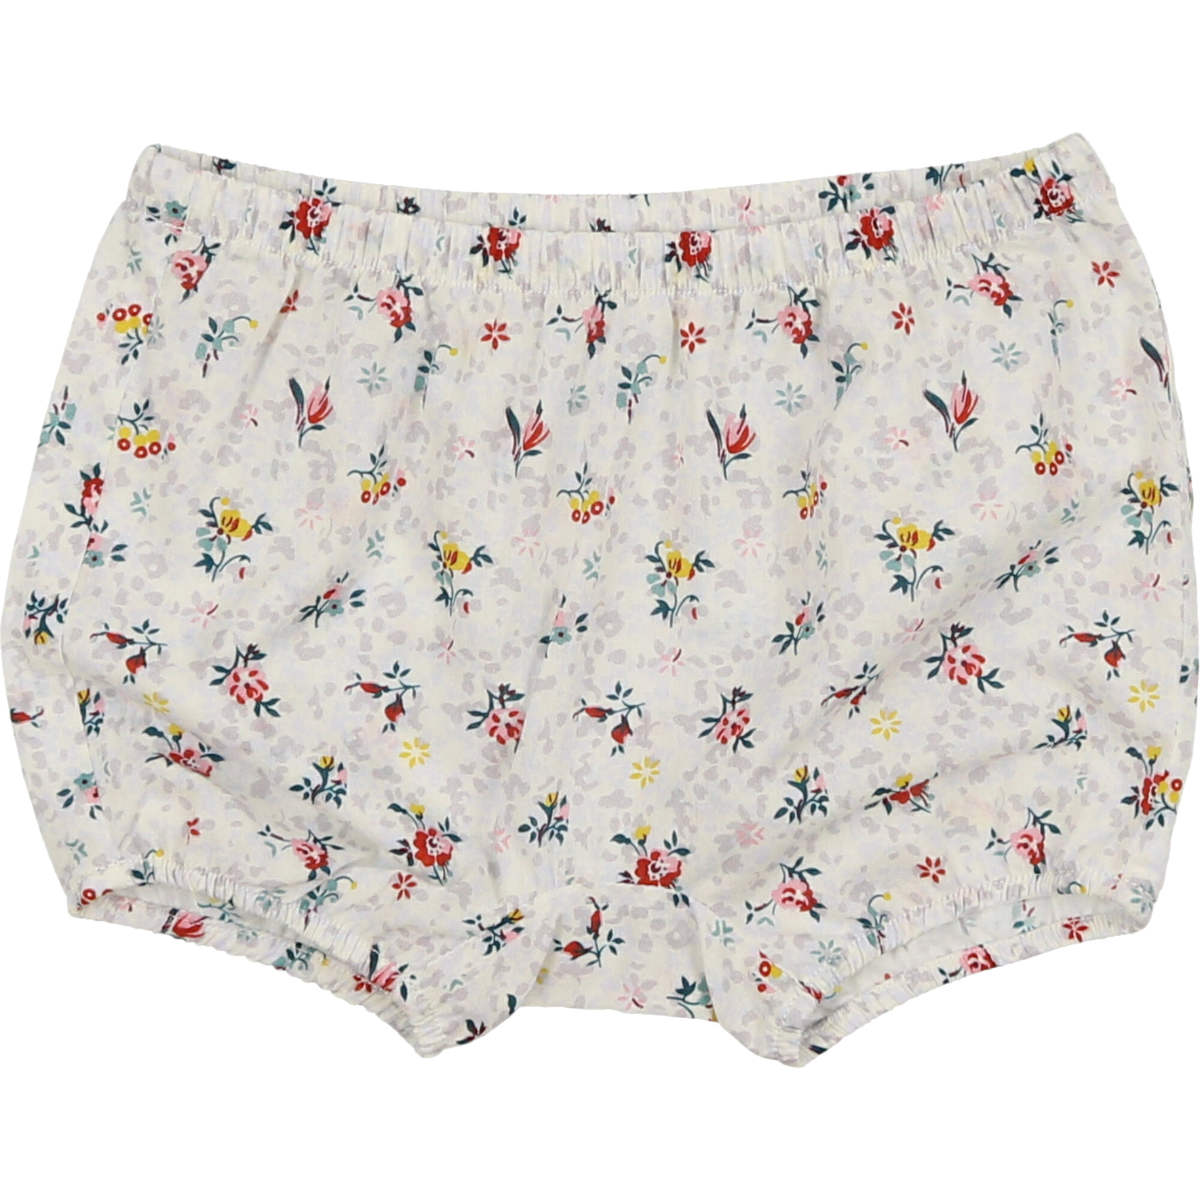 Delicat Girls' Grey Floral Bloomers